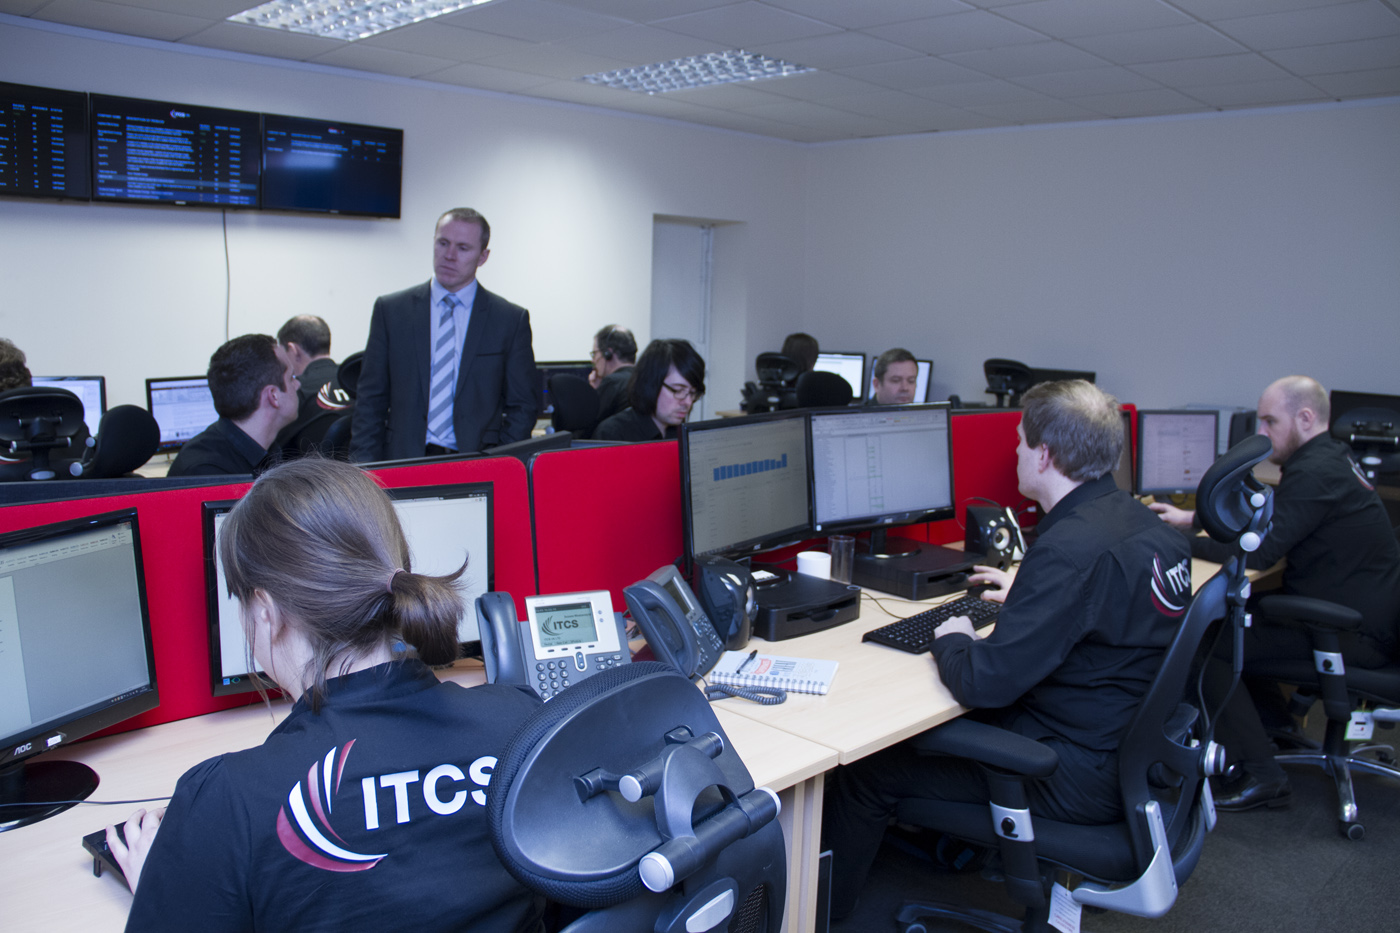 Business IT Support centre